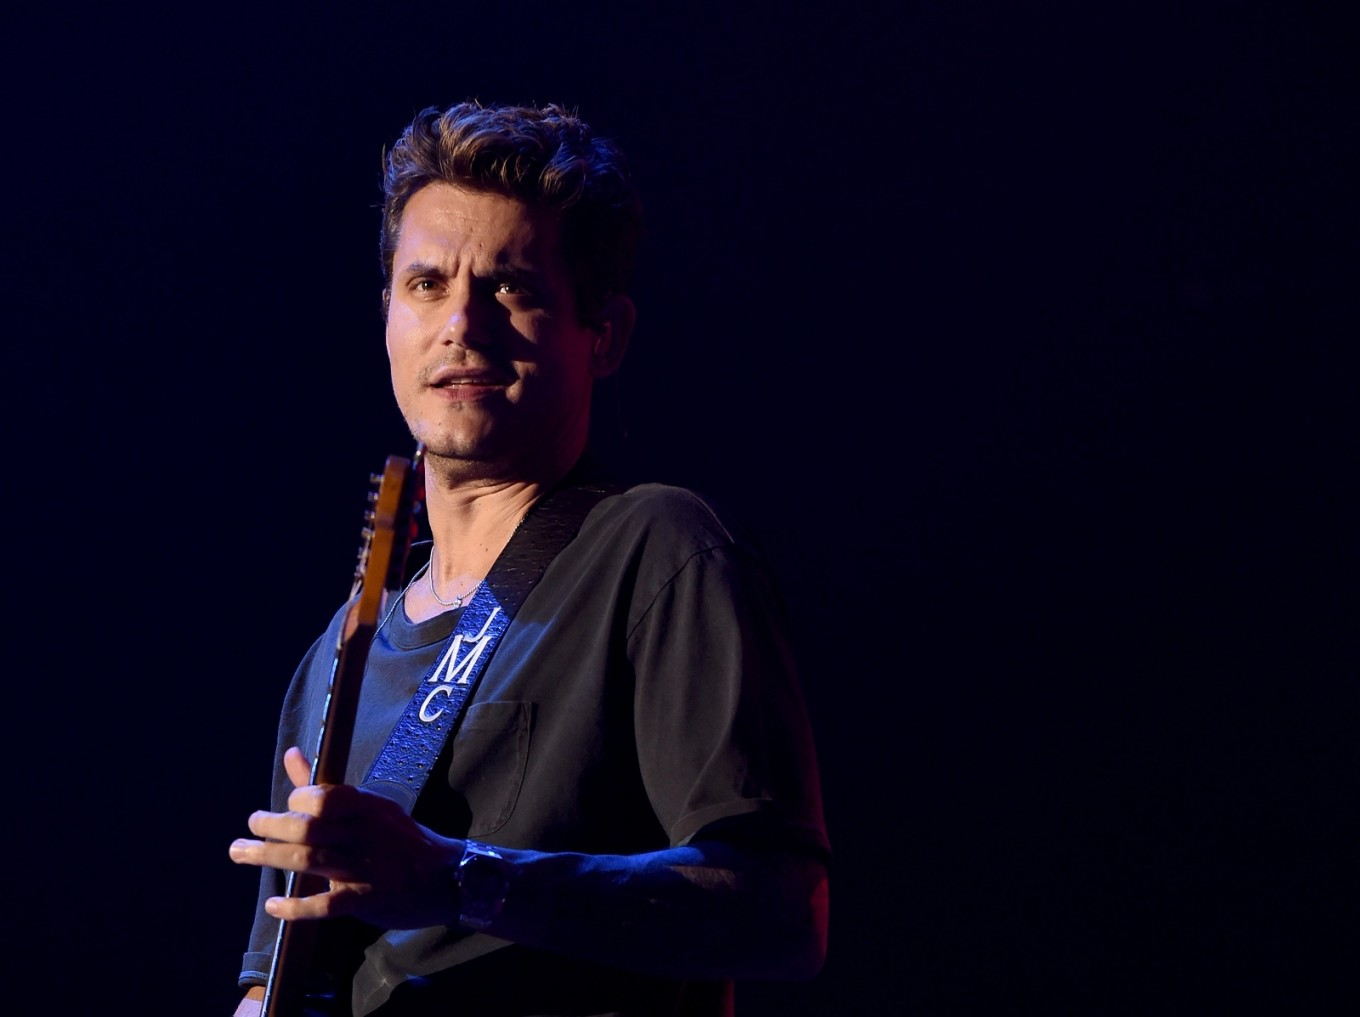 John Mayer coming to Jakarta in April